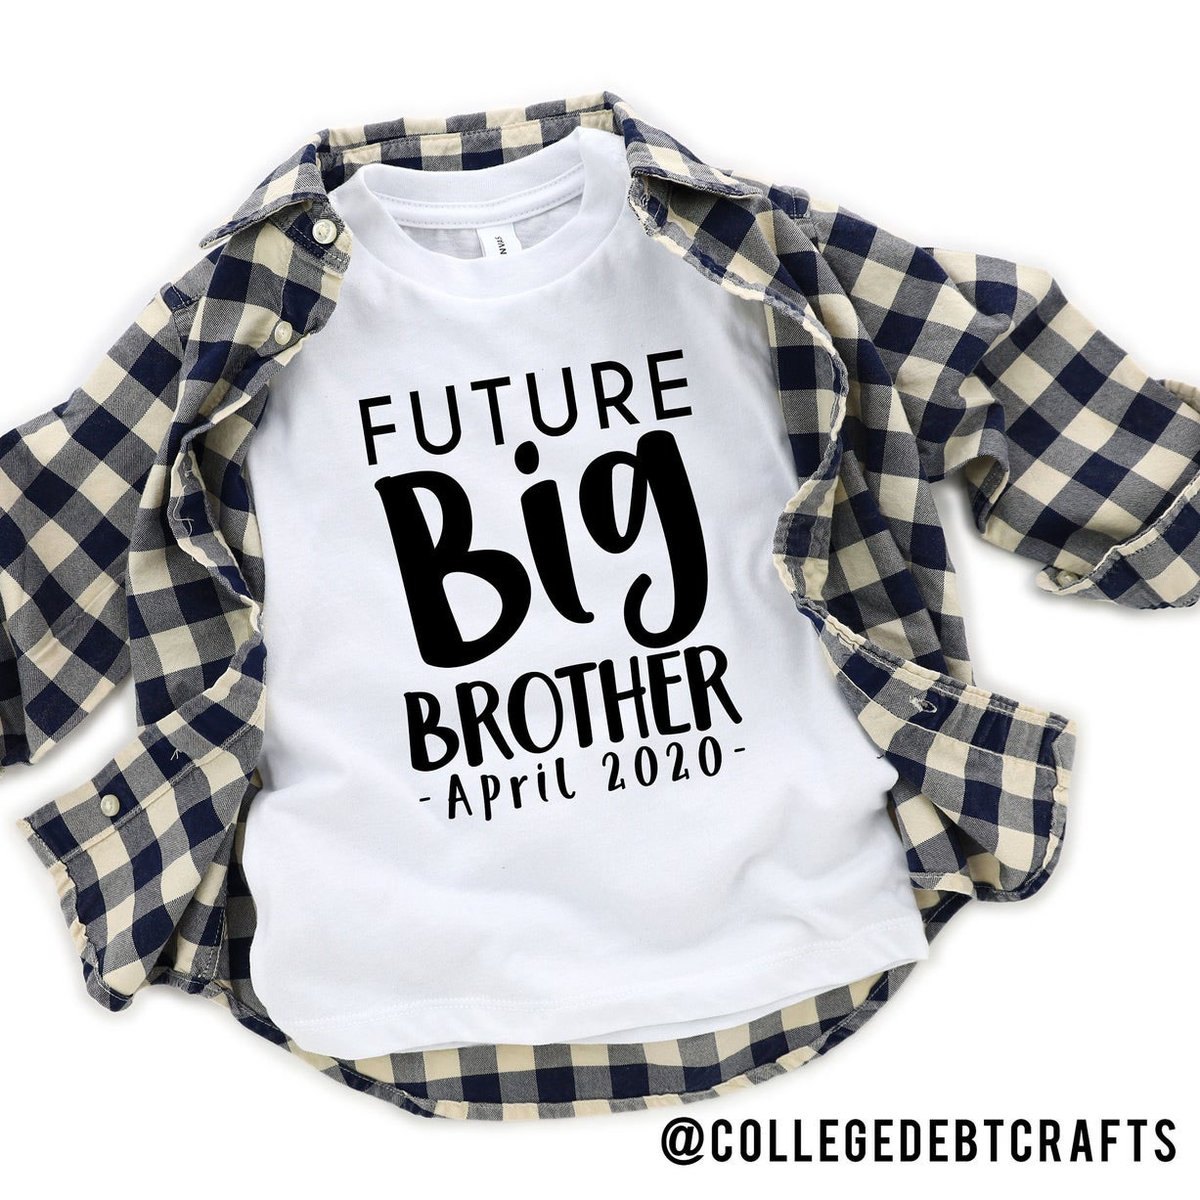 Custom baby announcement tees available in my Etsy shop!   - http://ow.ly/Yqp650yoBLM - #babyannouncement #mom #momlife #momsofinstagram #ootd #flatlay #collegedebtcrafts #indy #CustomTee #igstyle #igfashion #Fashion #style #OnTrendAlert #boutiquestyle #brothertee #shirtpic.twitter.com/eUXpyhHhia